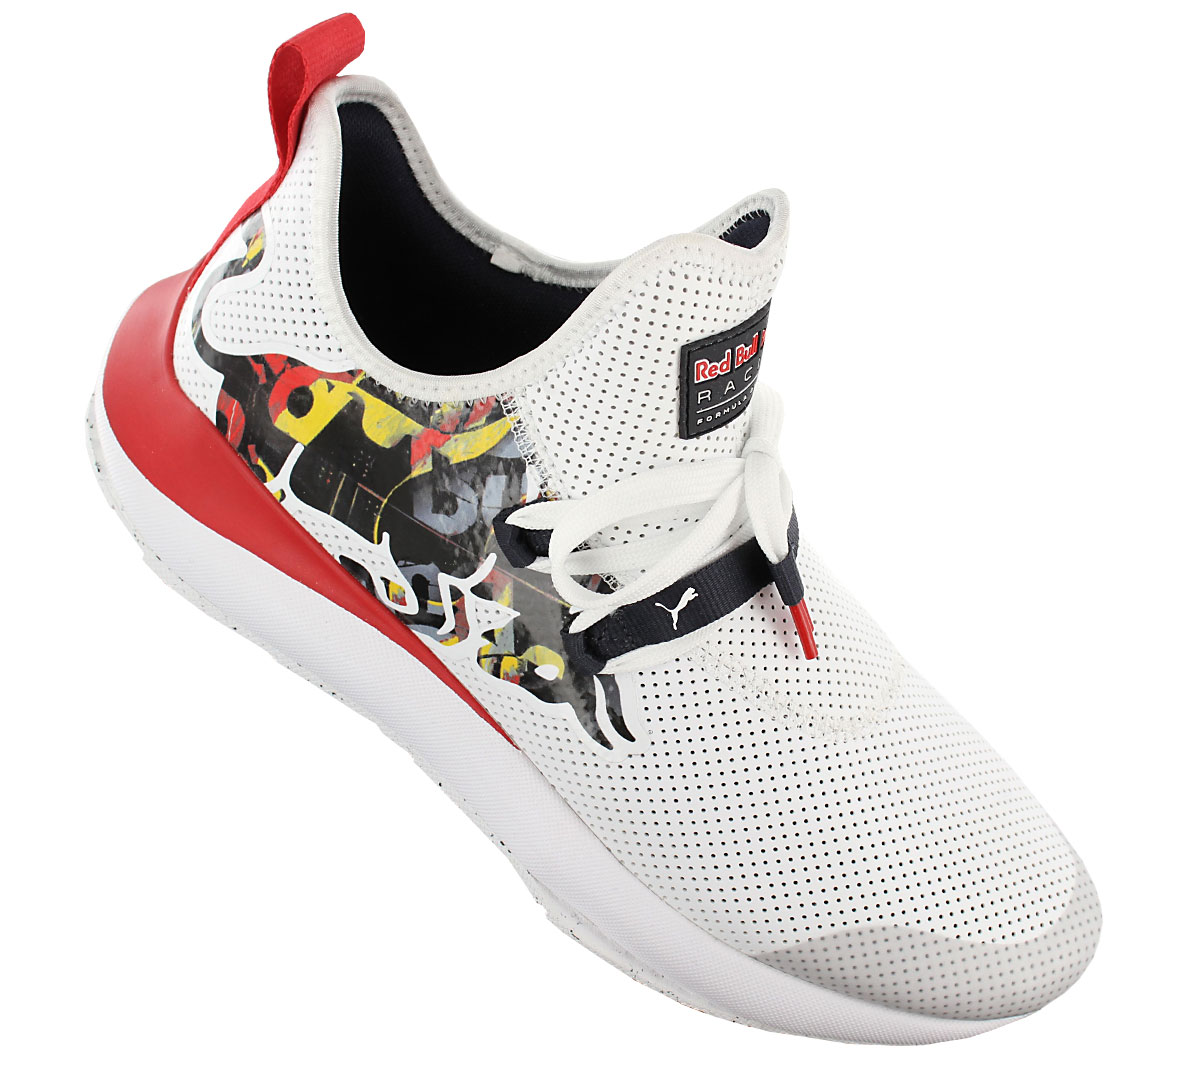 5036067e47cfda Puma Red Bull Evo Cat II Bulls Ignite Men s Sneakers Shoes Sneakers ...